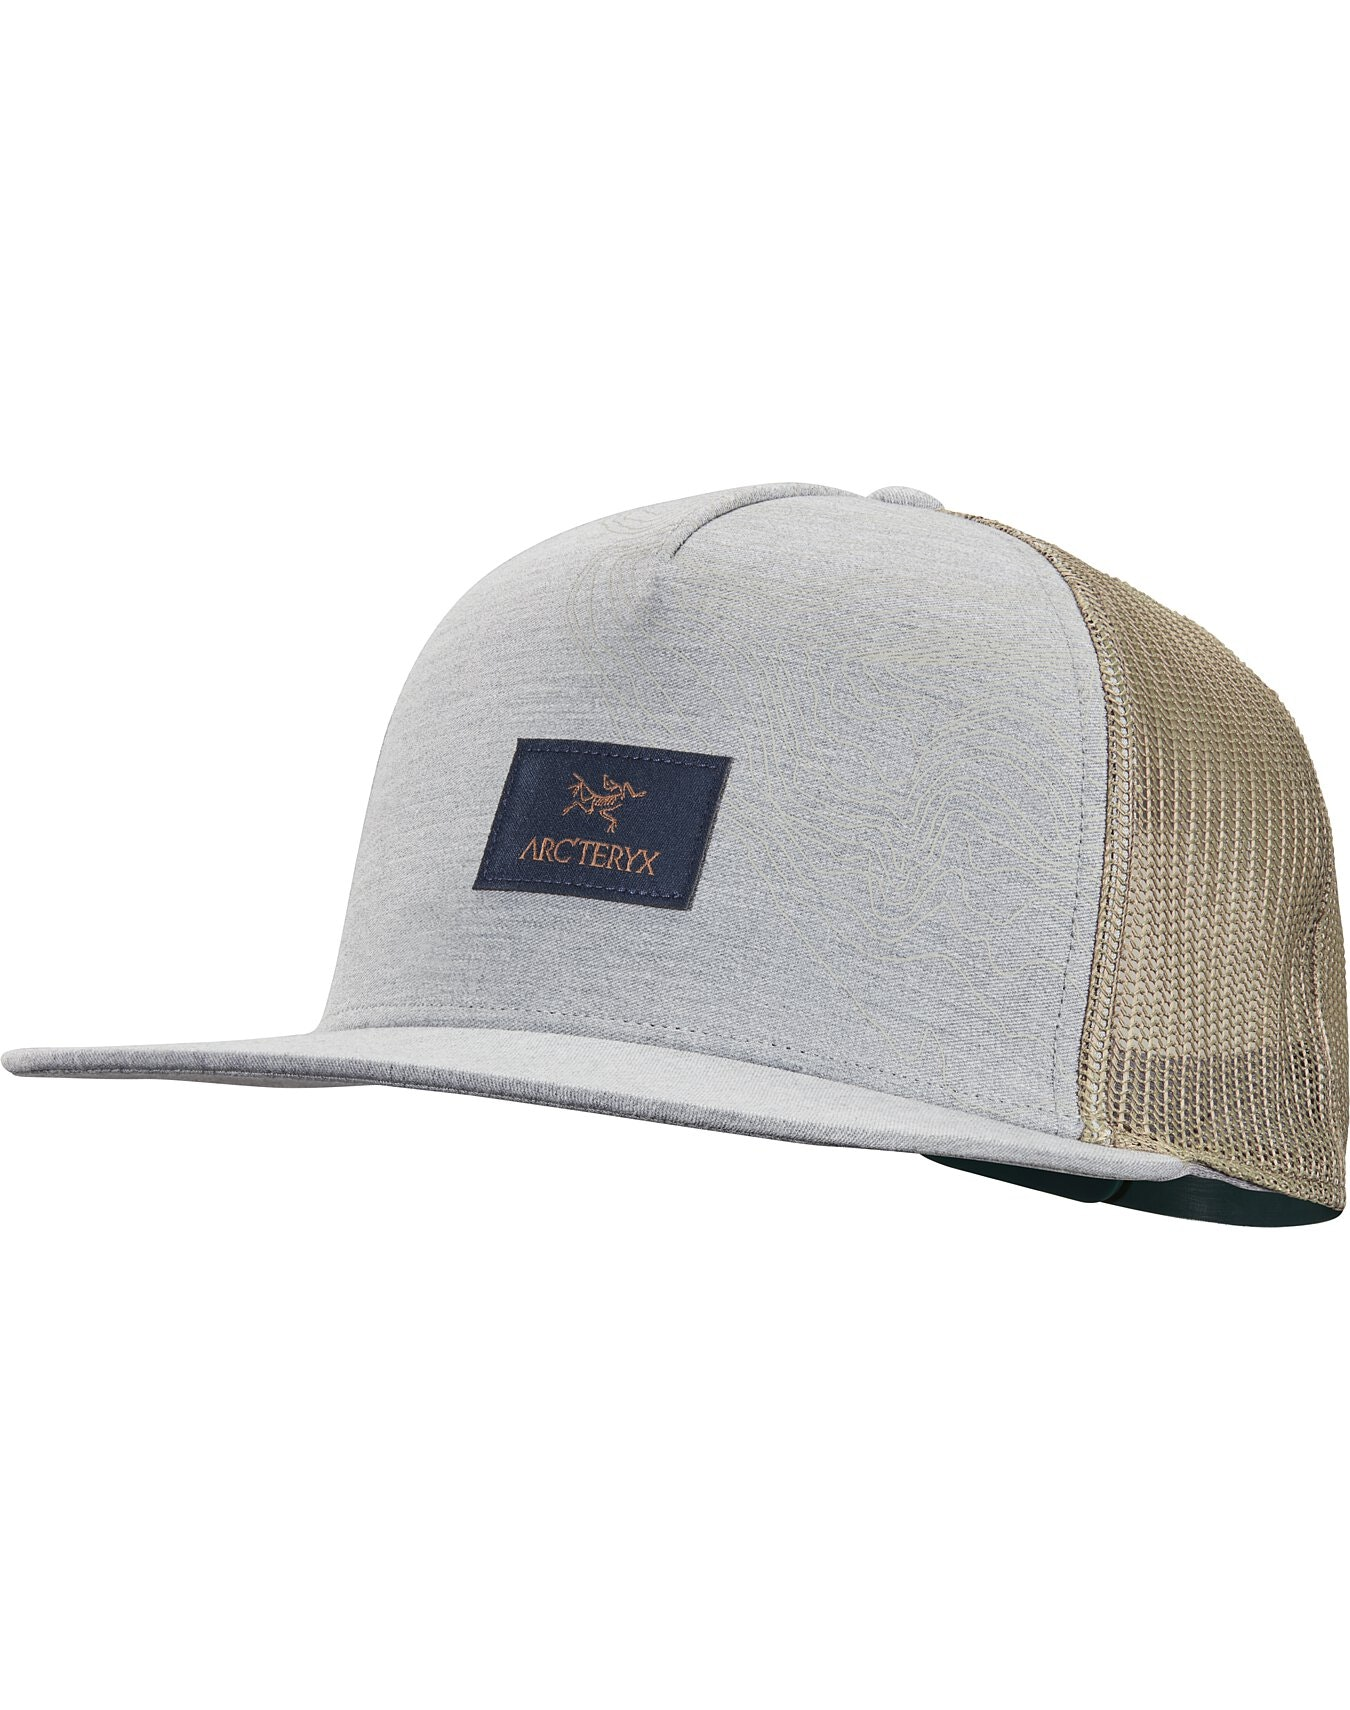 Topographical Trucker Hat Grey Heather